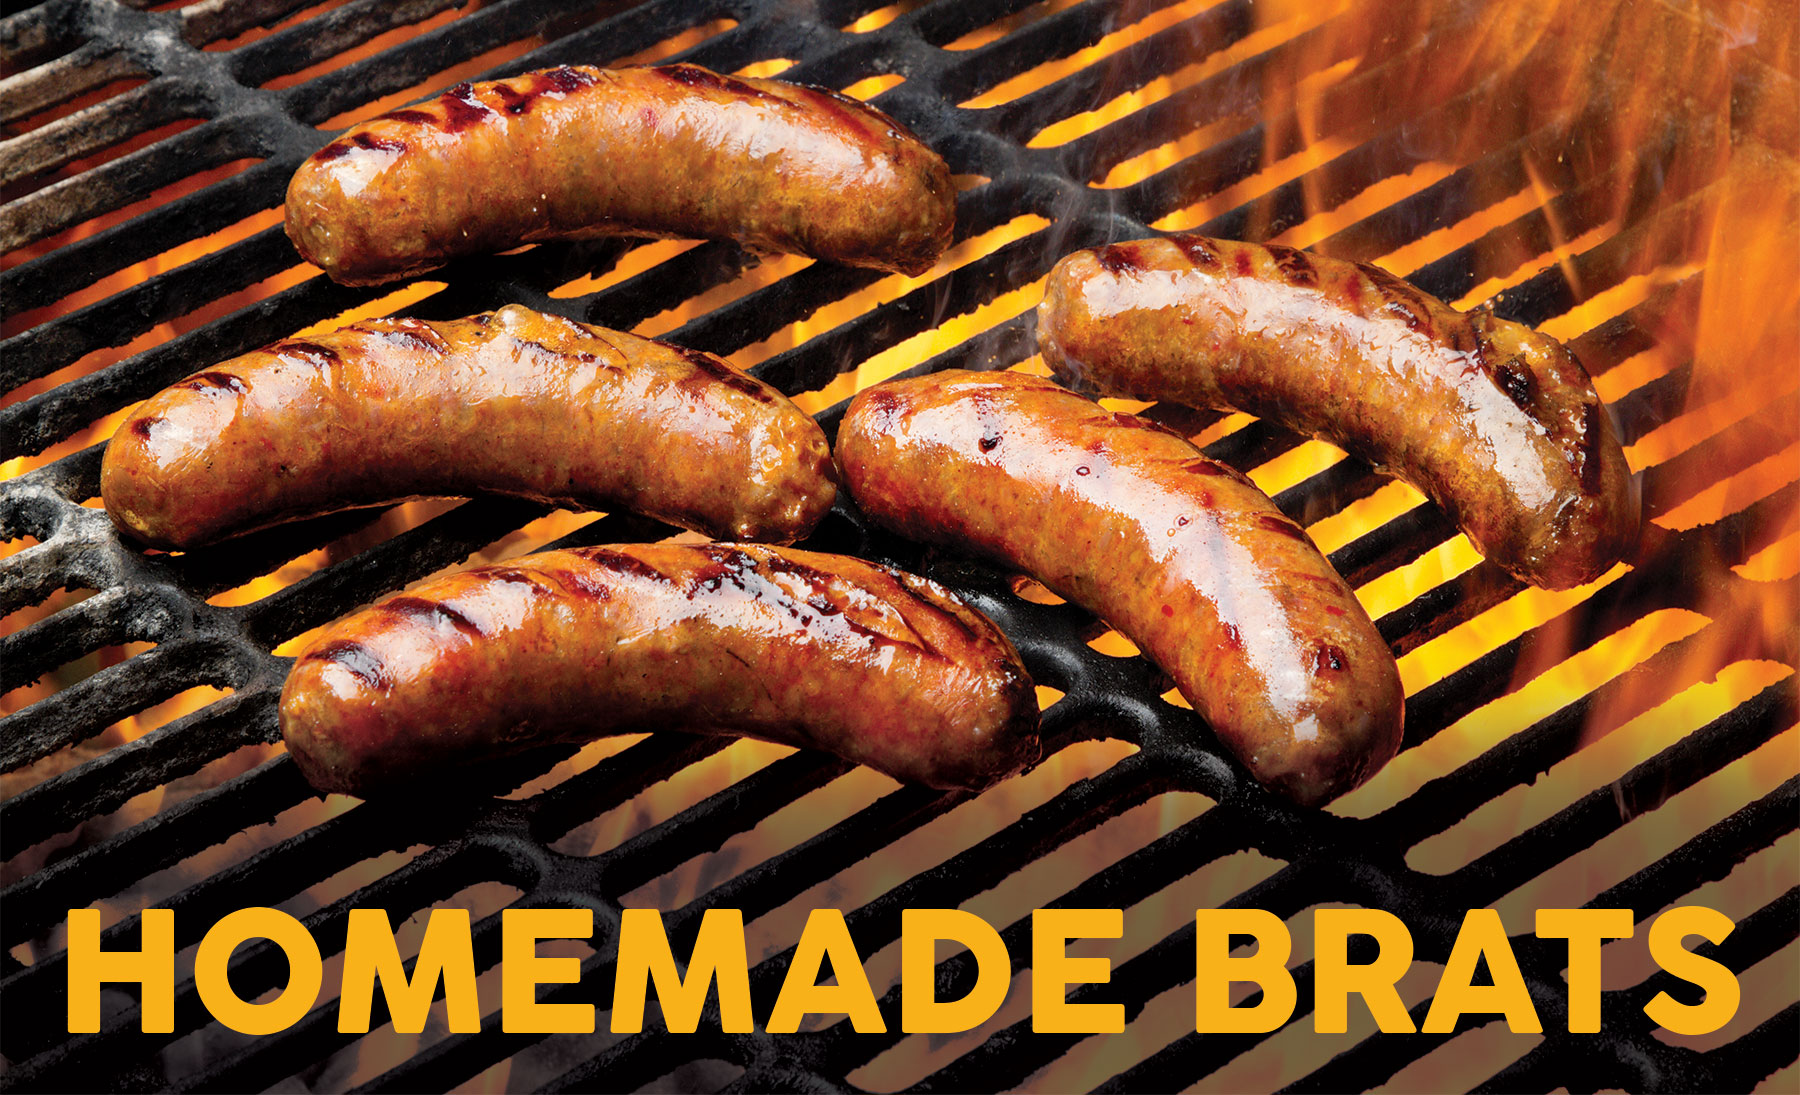 HOMEMADE-BRATS